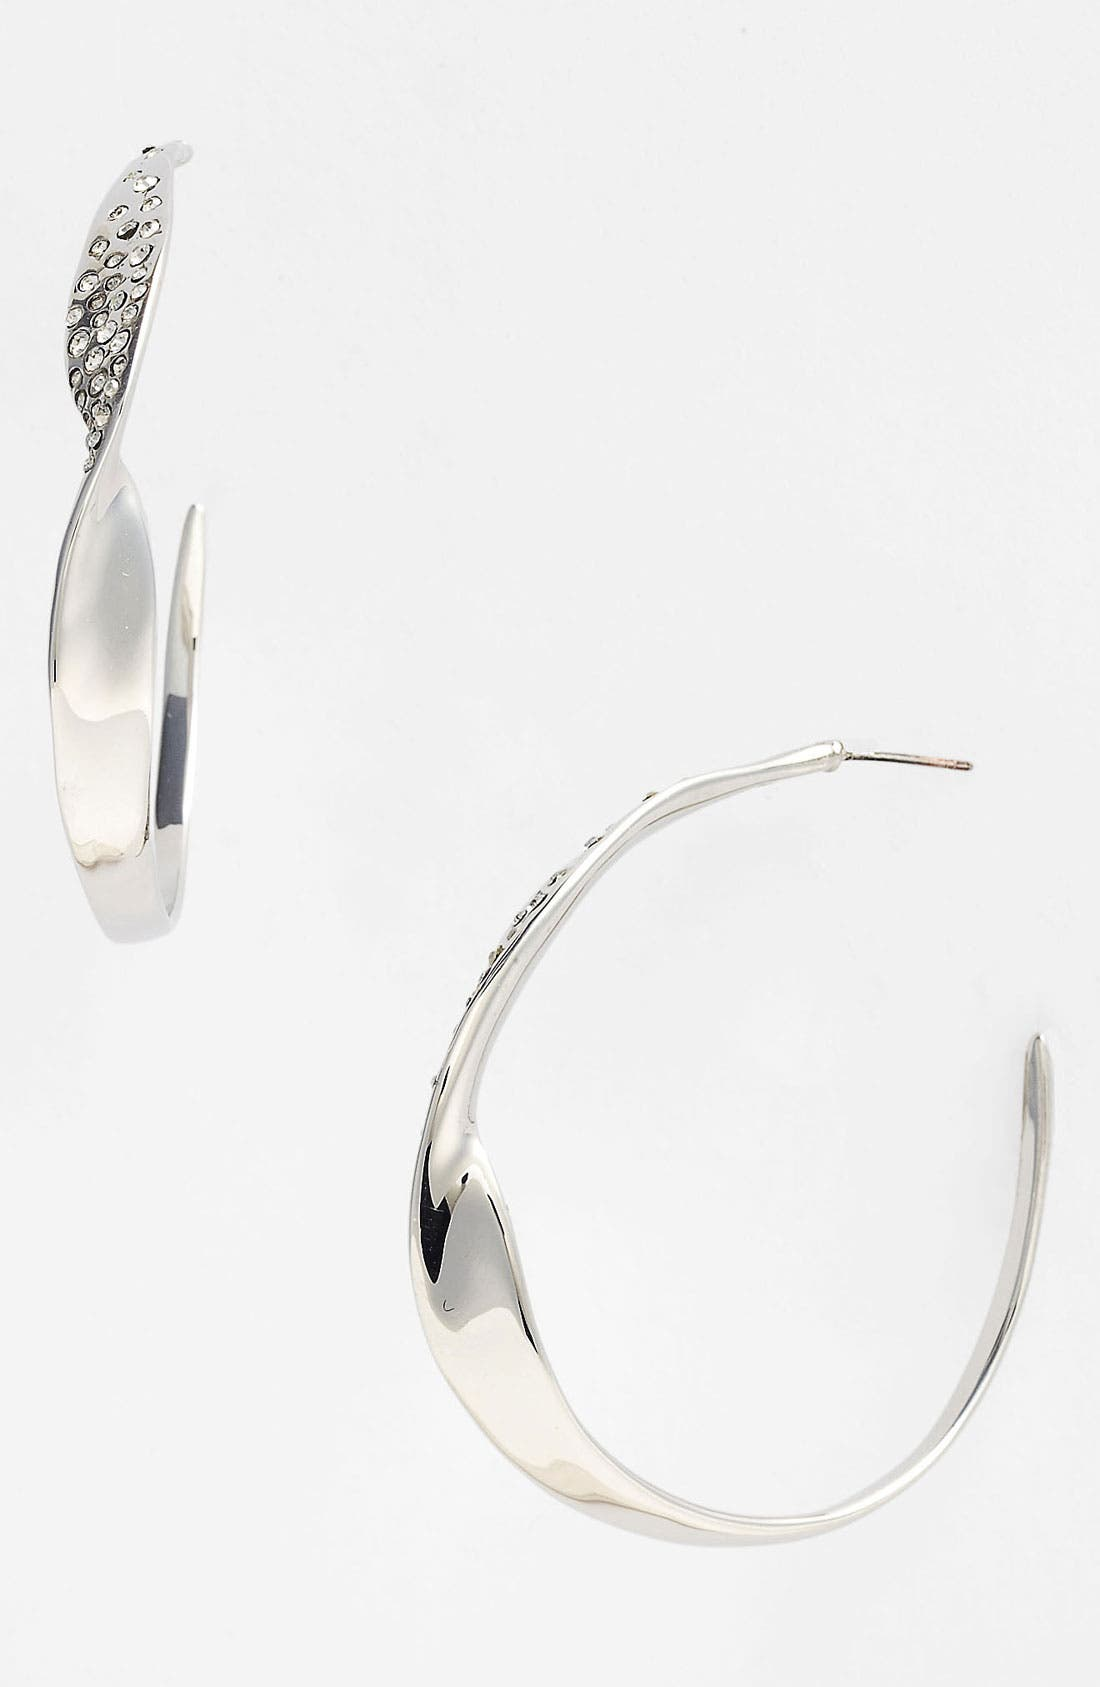 Alternate Image 1 Selected - Alexis Bittar 'Miss Havisham - Bel Air' Twisted Hoop Earrings